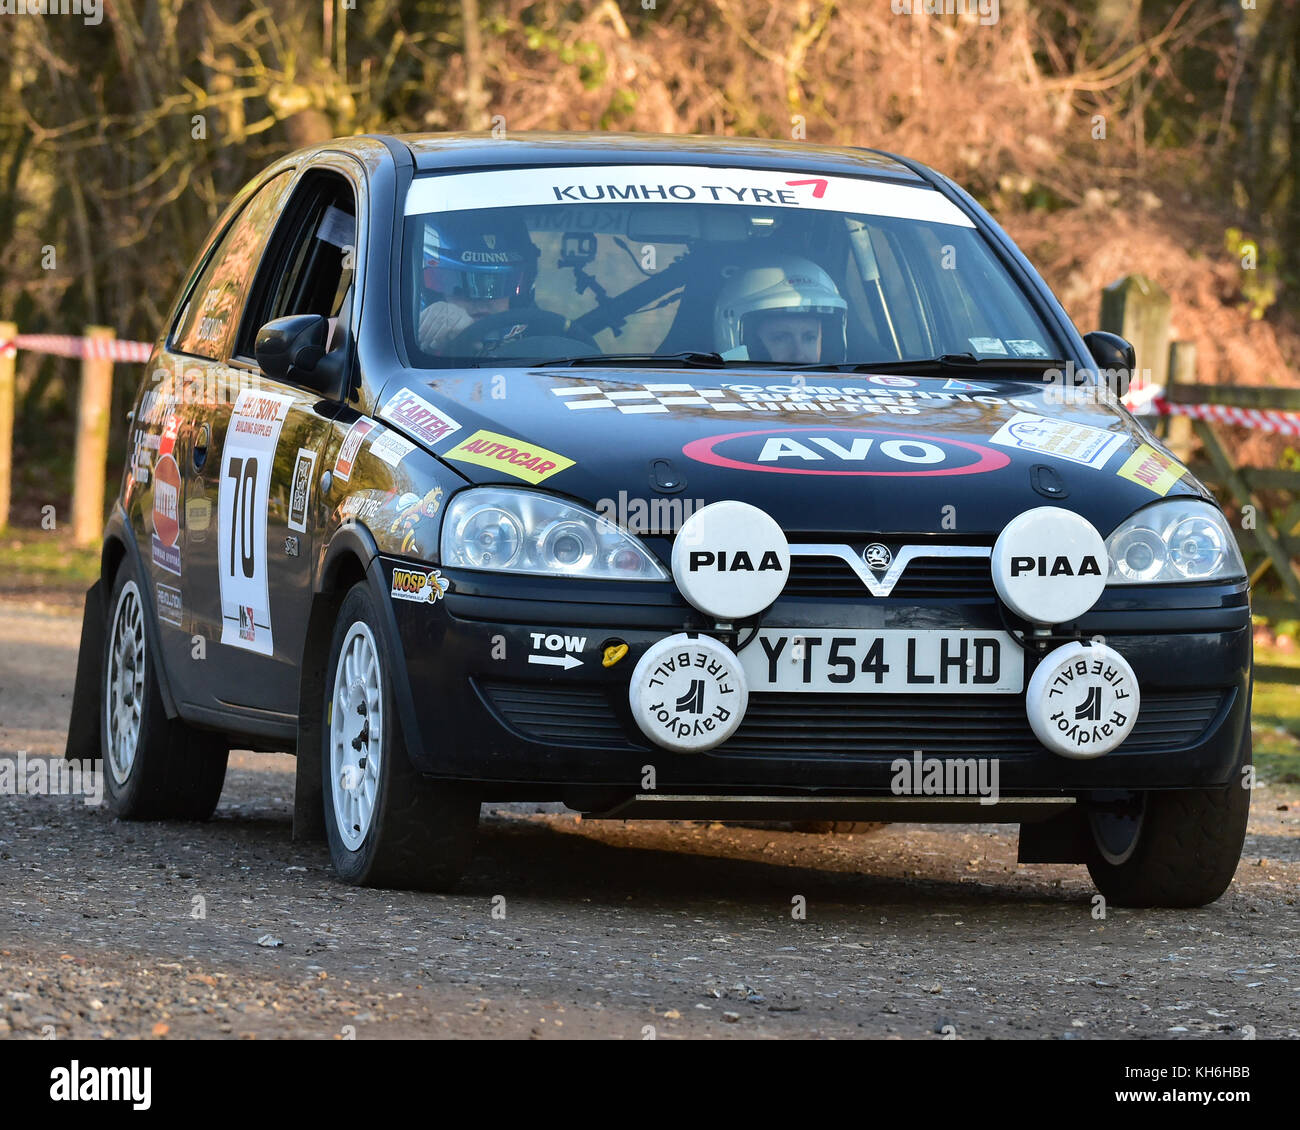 Vauxhall Corsa Stock Photos & Vauxhall Corsa Stock Images - Alamy